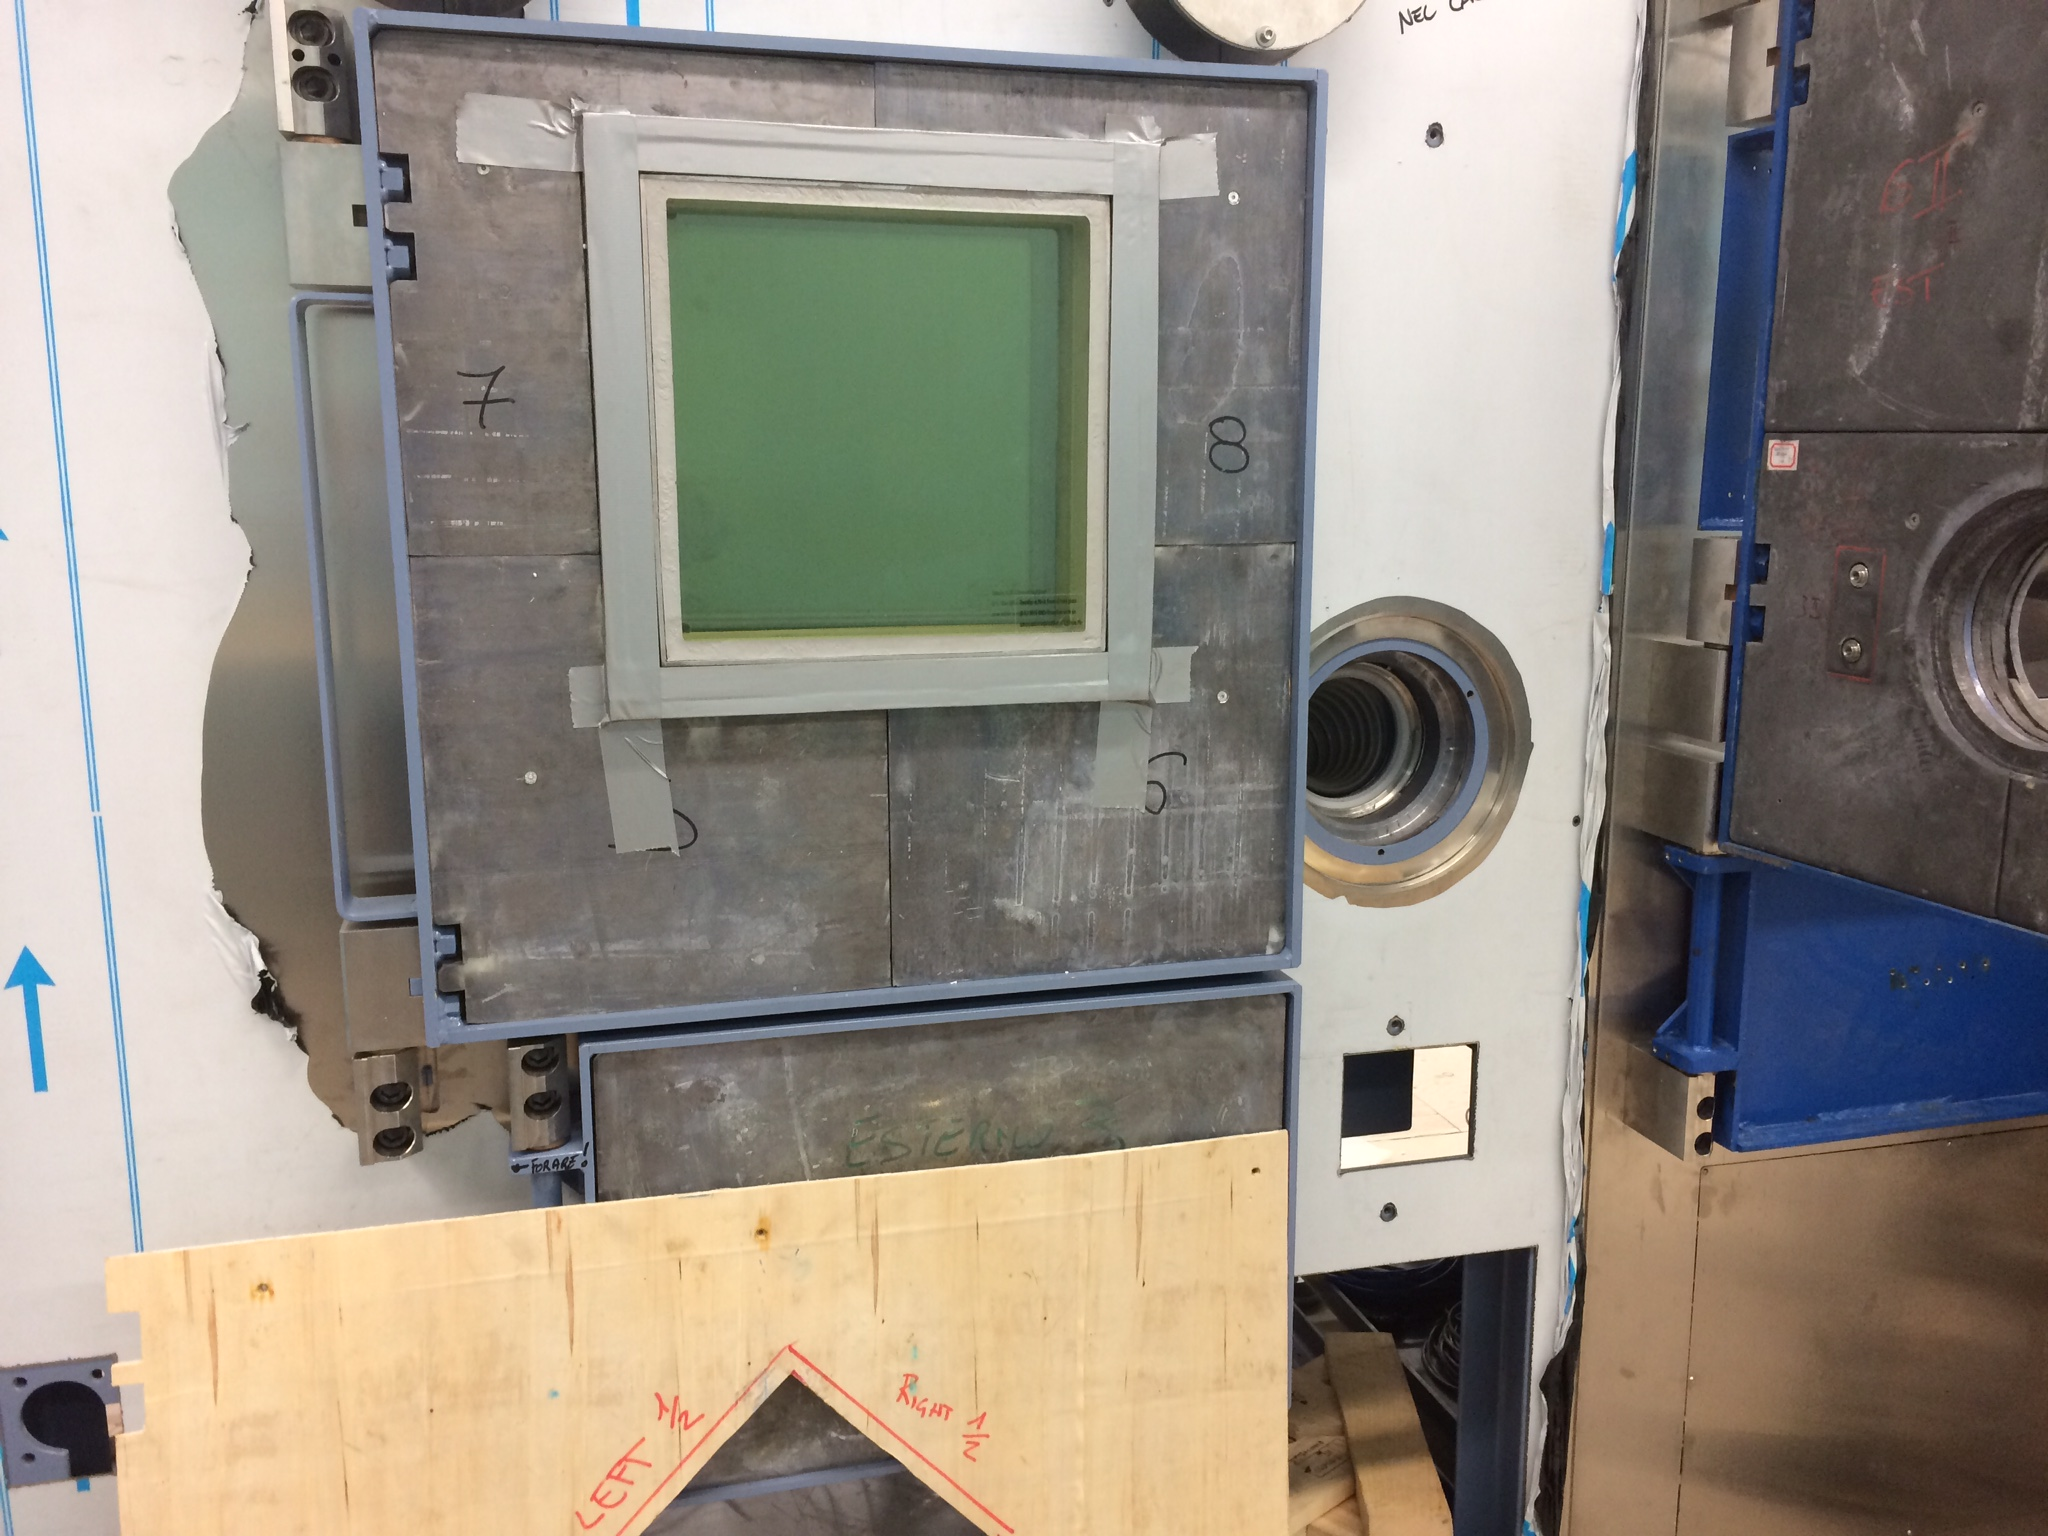 Lead door and lead glass on hot cell